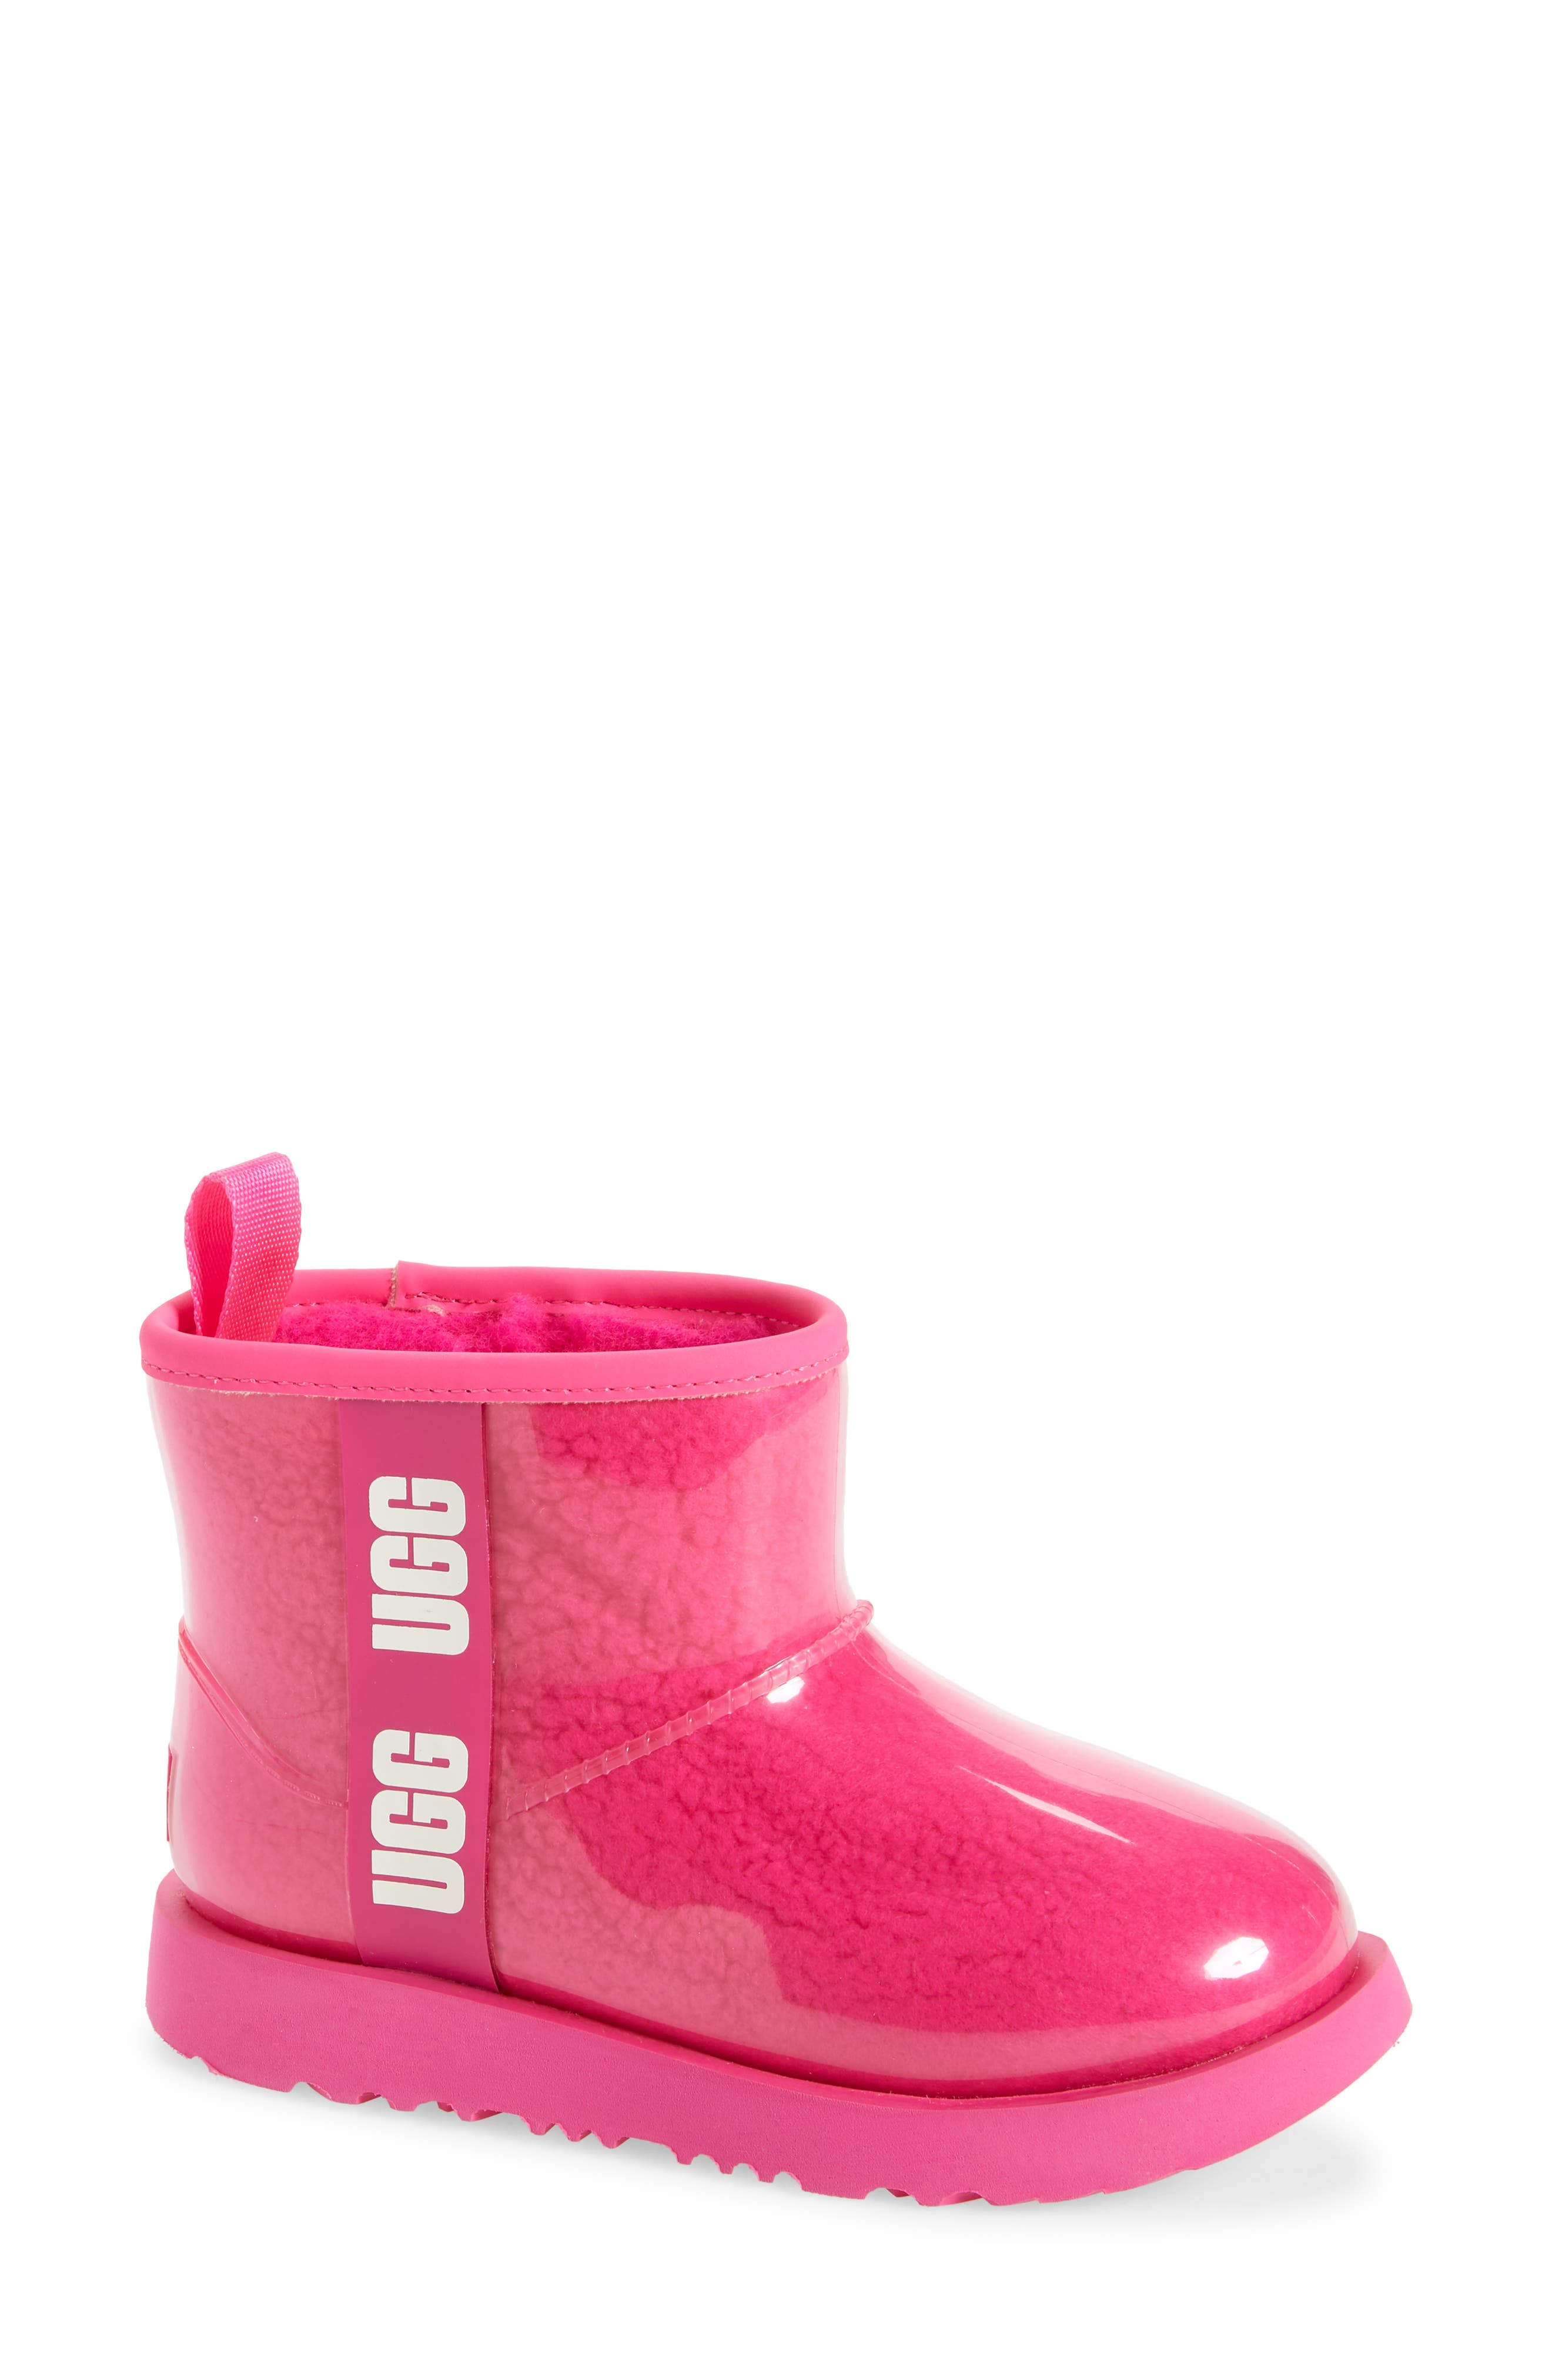 ugg shoes for girls